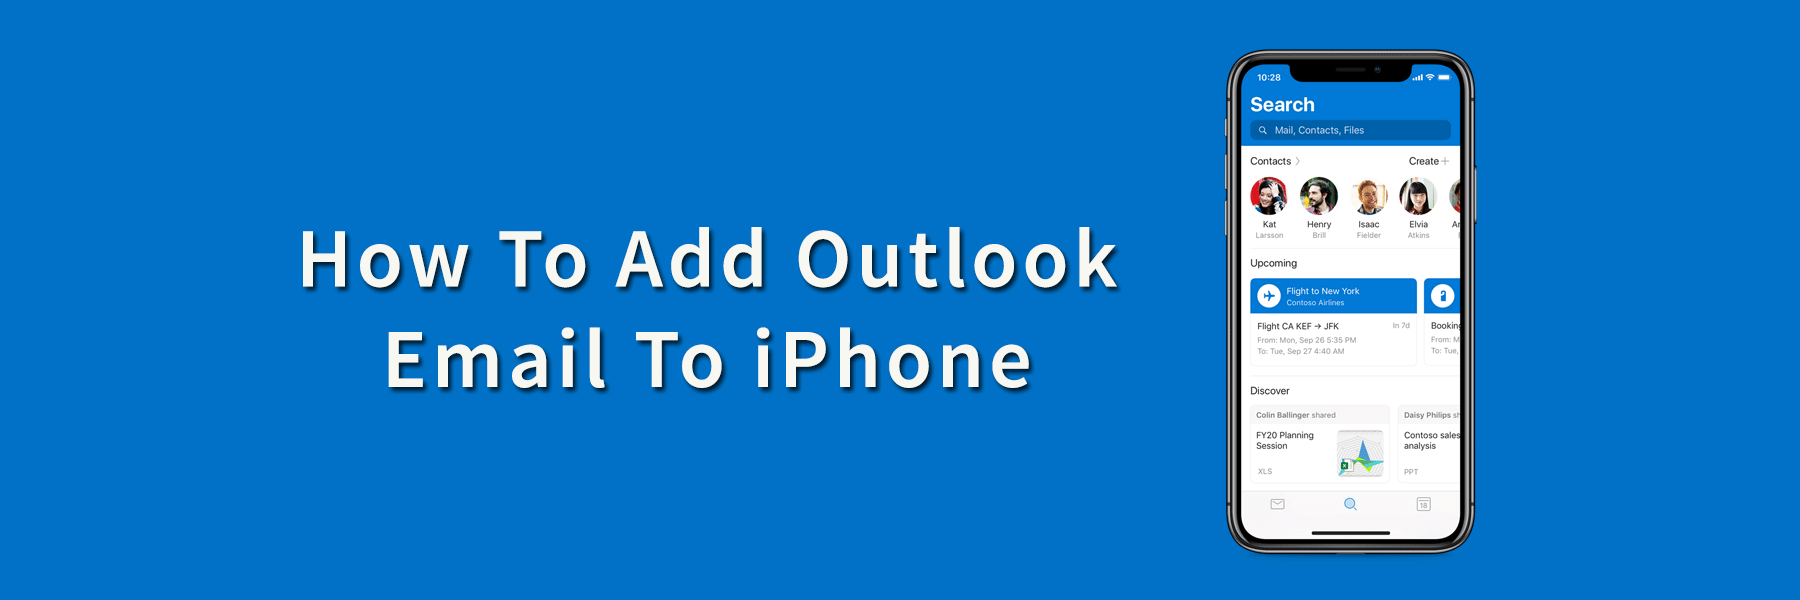 How To Add Outlook Email To iPhone?